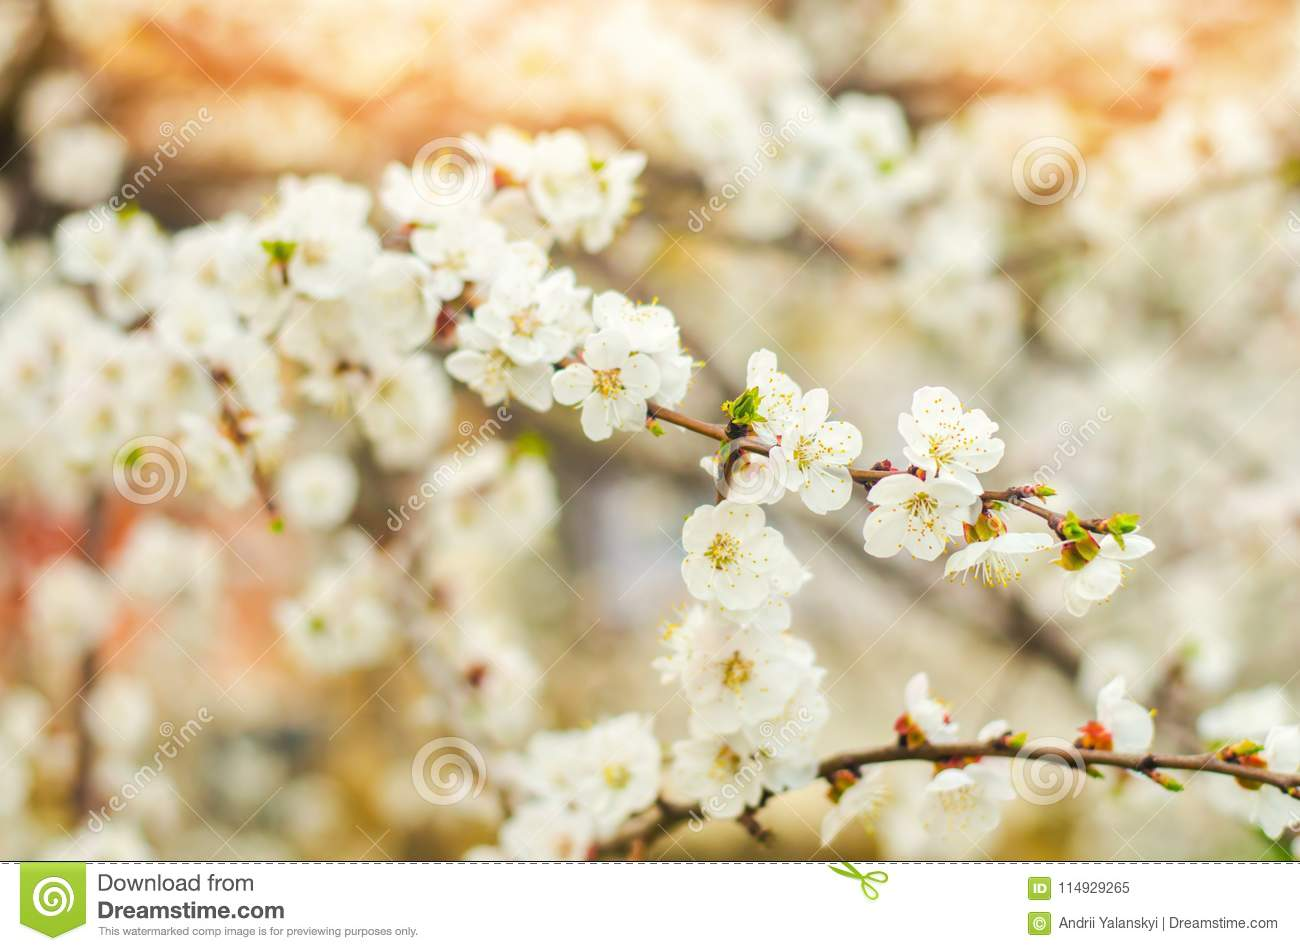 Cherry blossom on a sunny day, the arrival of spring, the blossoming of trees, buds on a tree, natural wallpaper